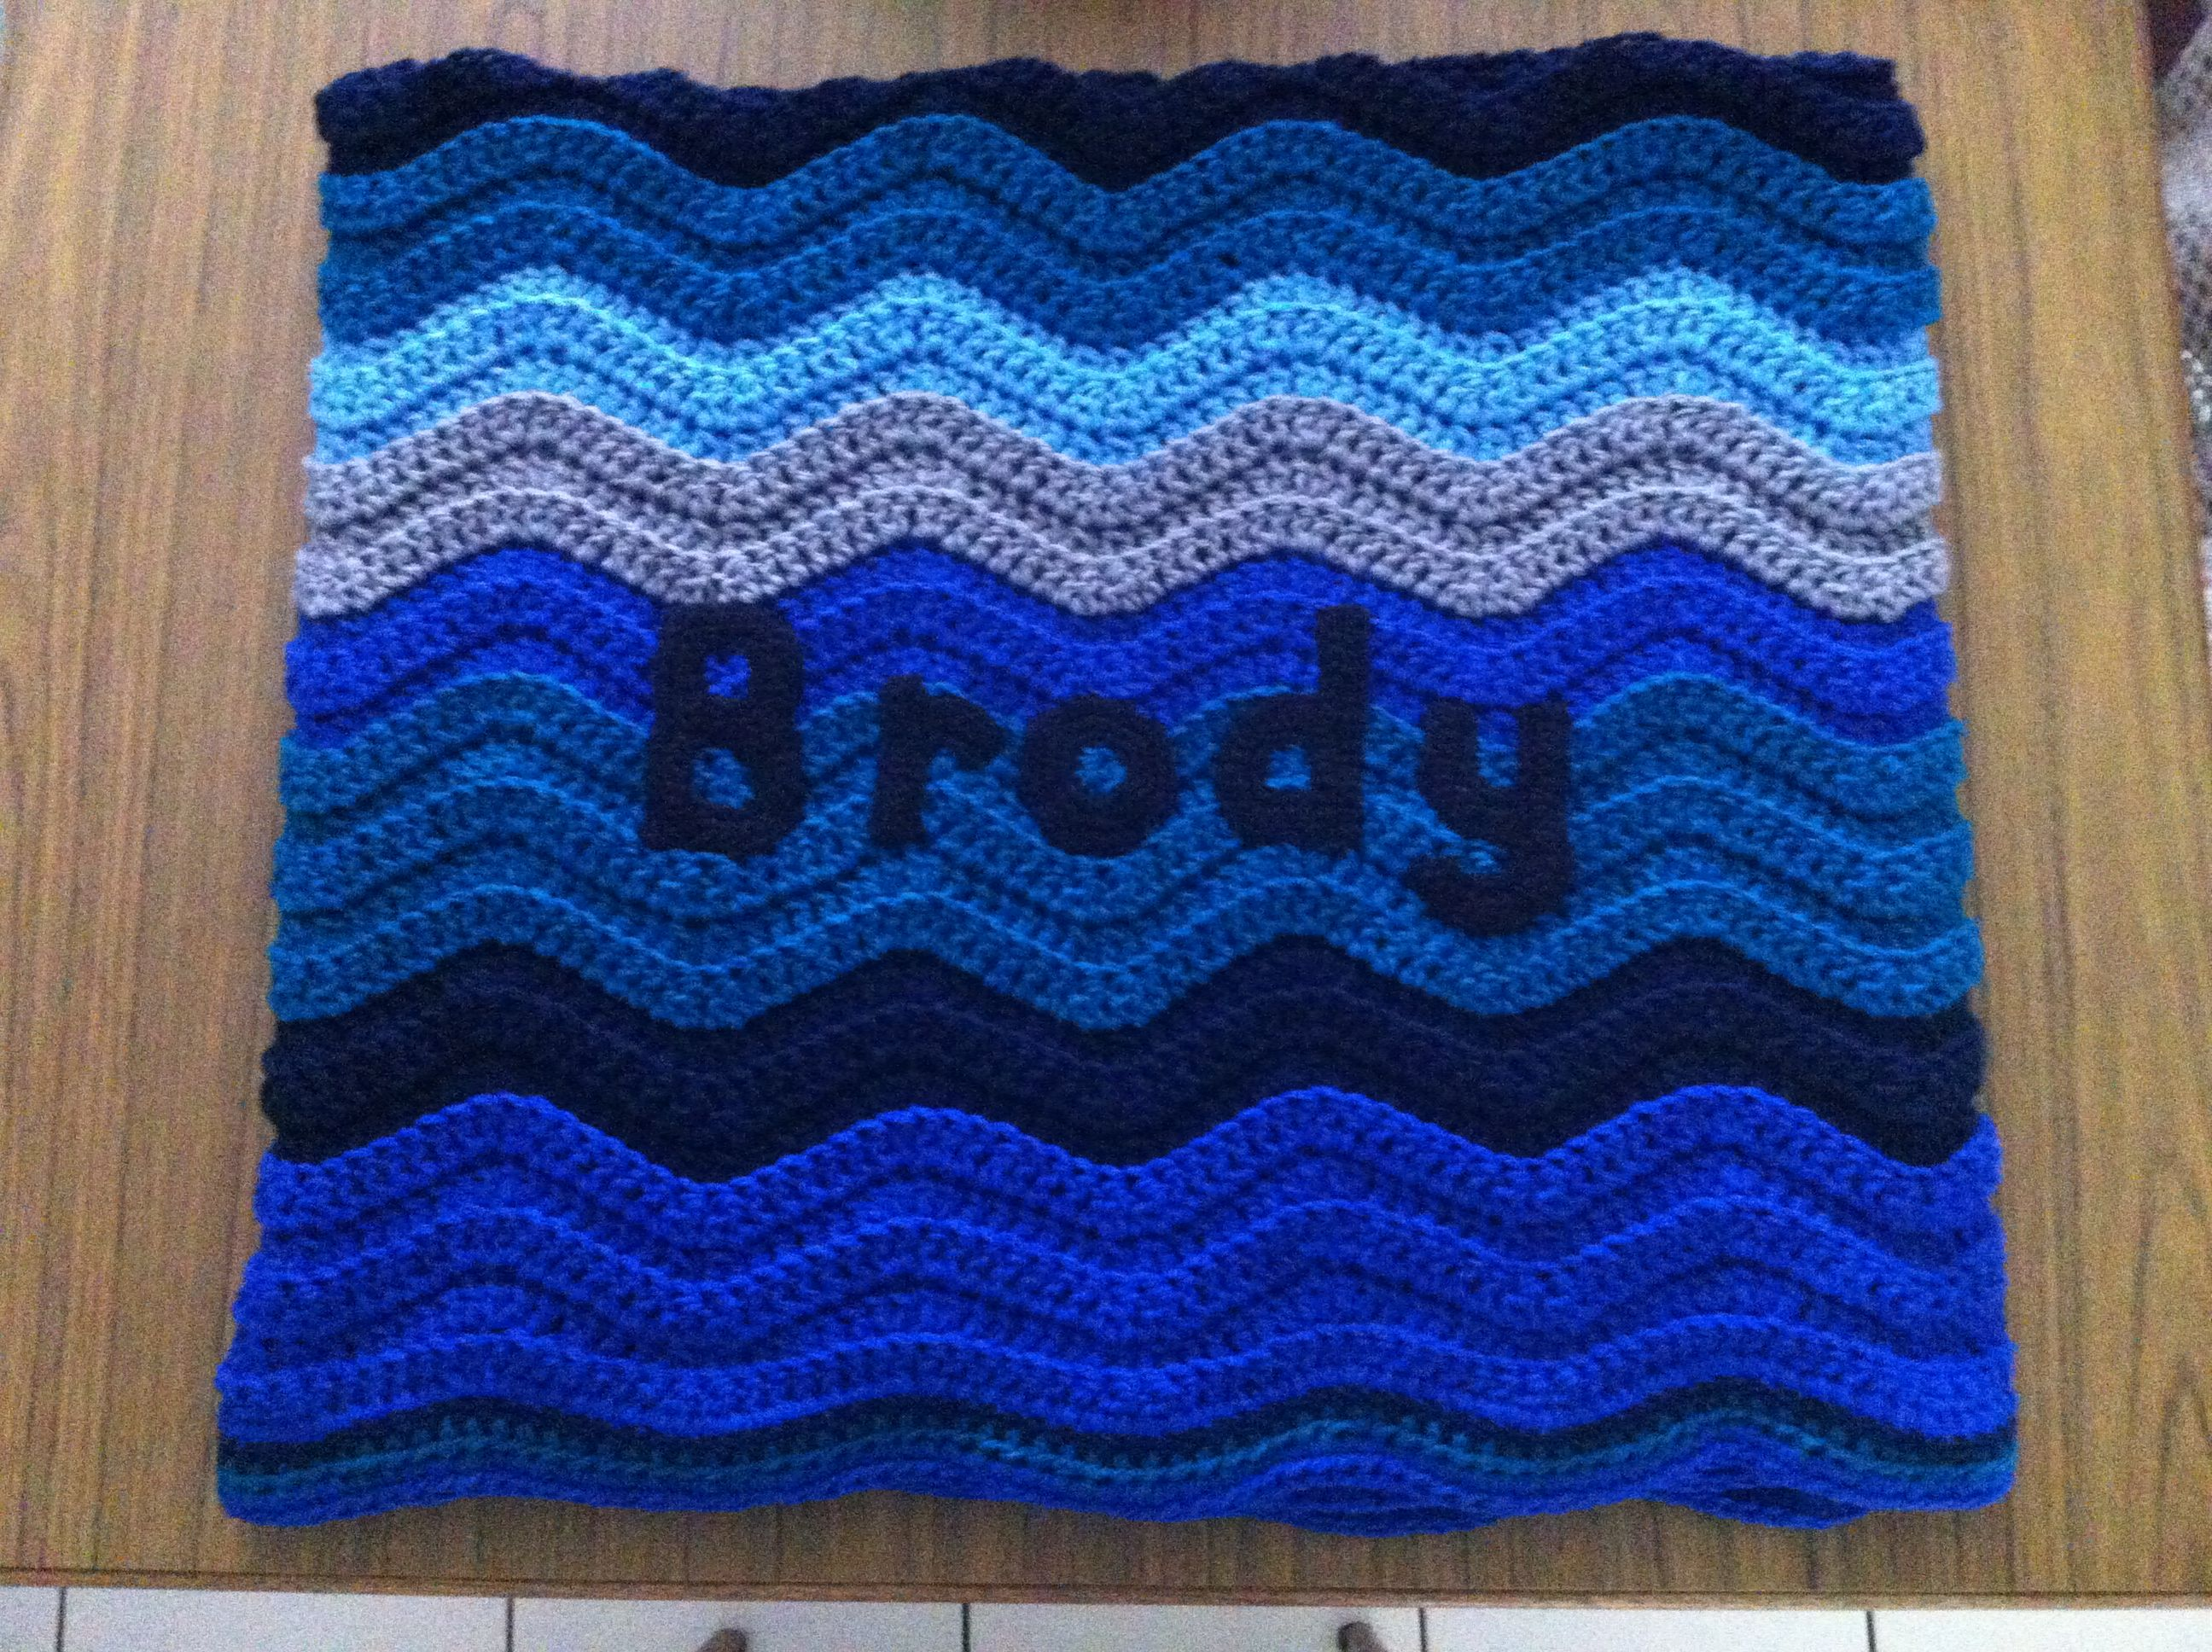 Personalised Crochet Ripple Blanket Pattern From Attic